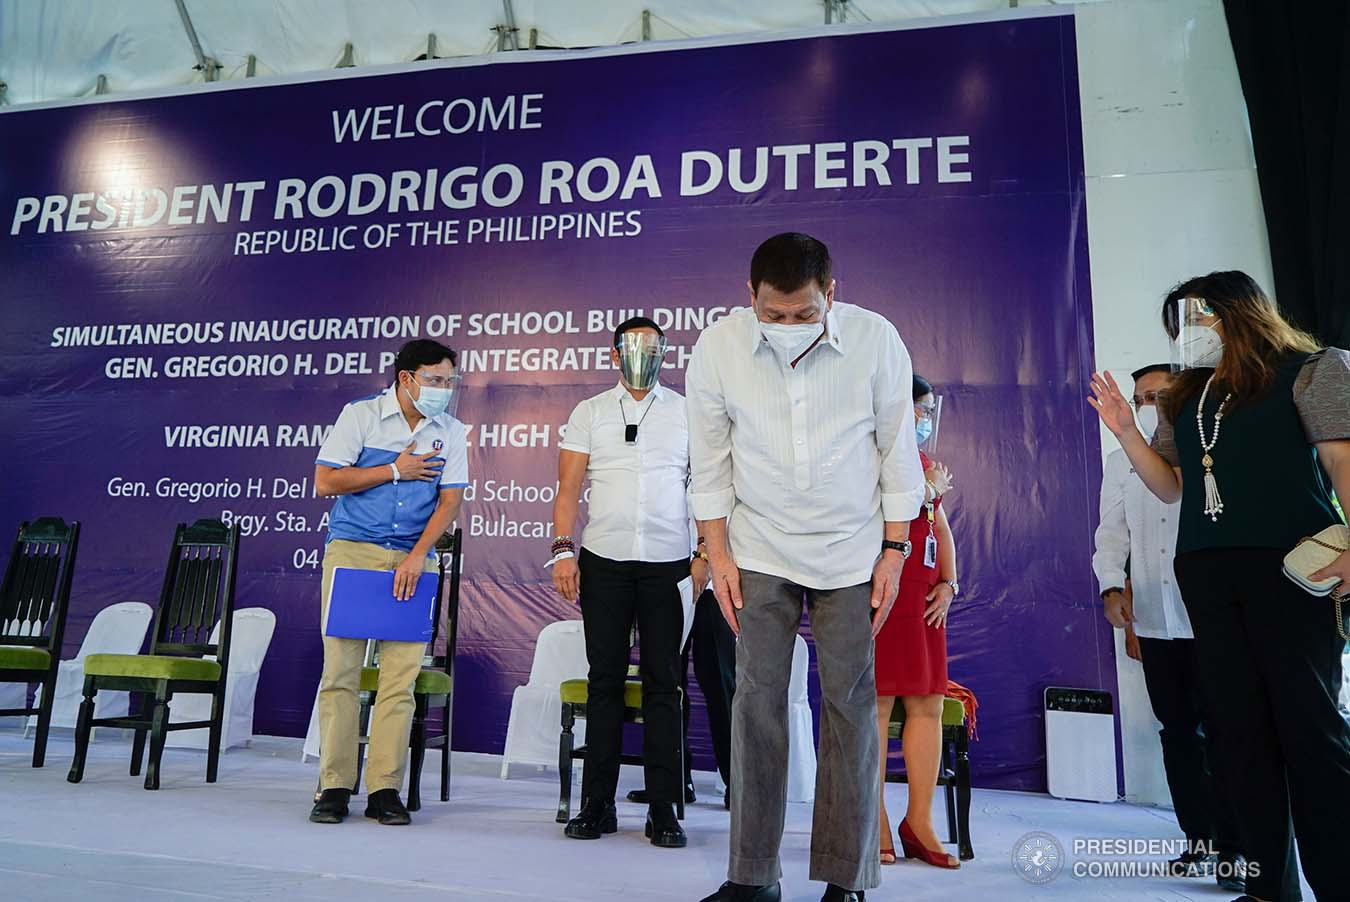 President Rodrigo Roa Duterte shows a gesture of respect as he takes center stage during the inauguration of the newly constructed Gen. Gregorio H. Del Pilar Integrated School and Virginia Ramirez-Cruz High School buildings in Bulakan, Bulacan on March 4, 2021. KING RODRIGUEZ/ PRESIDENTIAL PHOTO